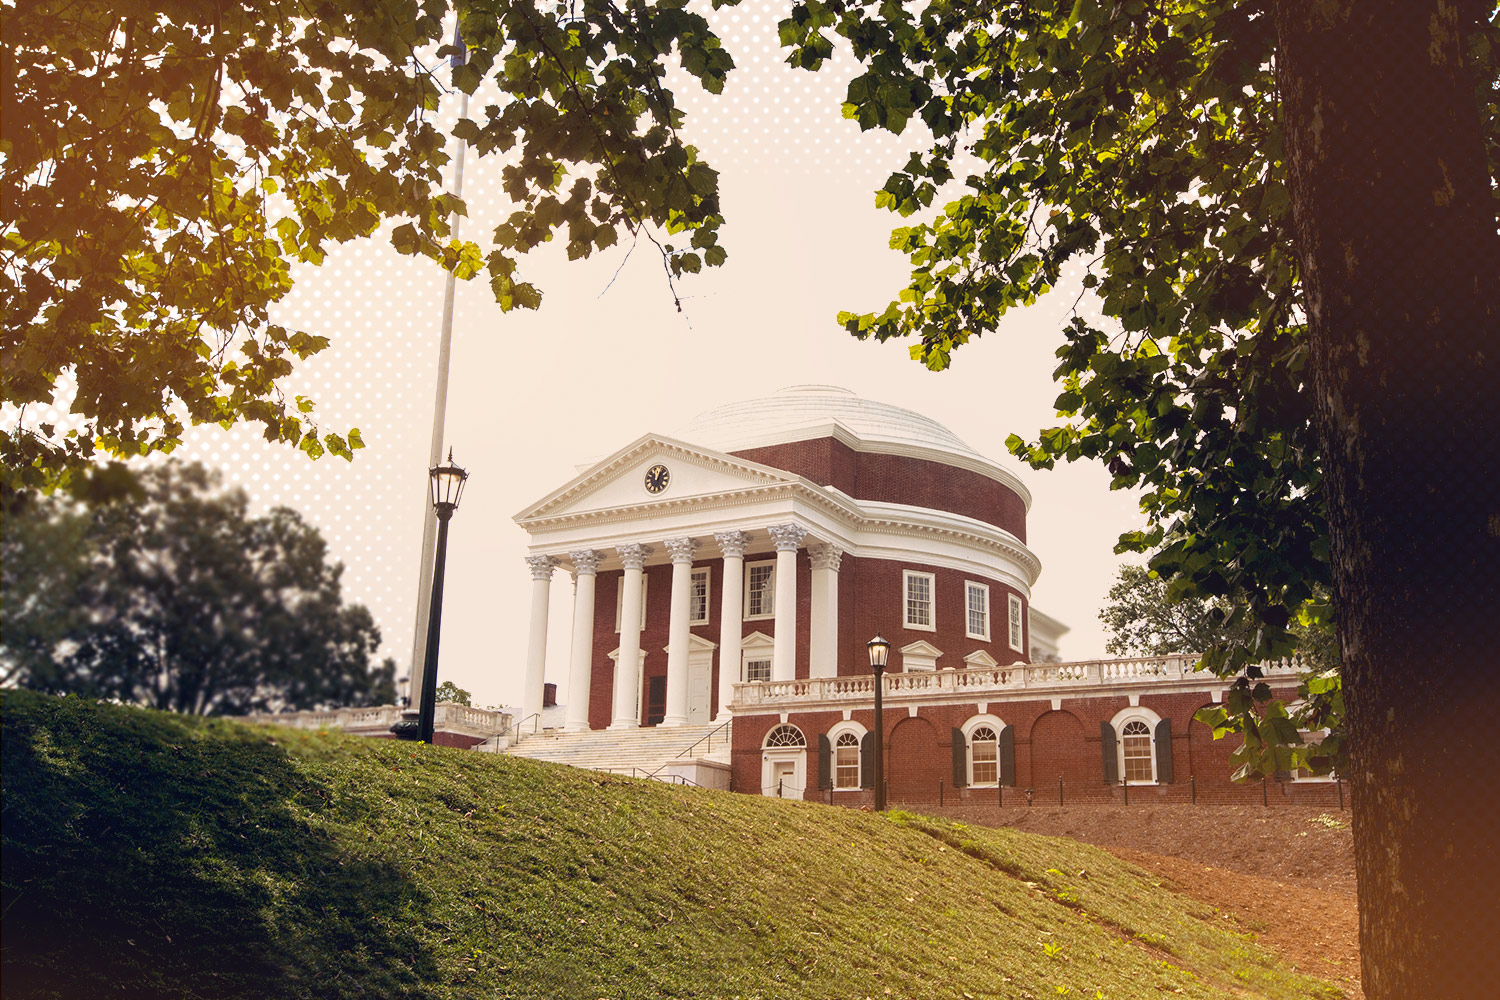 U.S. News & World Report has named UVA the No. 2 public university for 2017. The University has been among the top three public schools each year since the rankings' inception. (Photo by Dan Addison, University Communications)